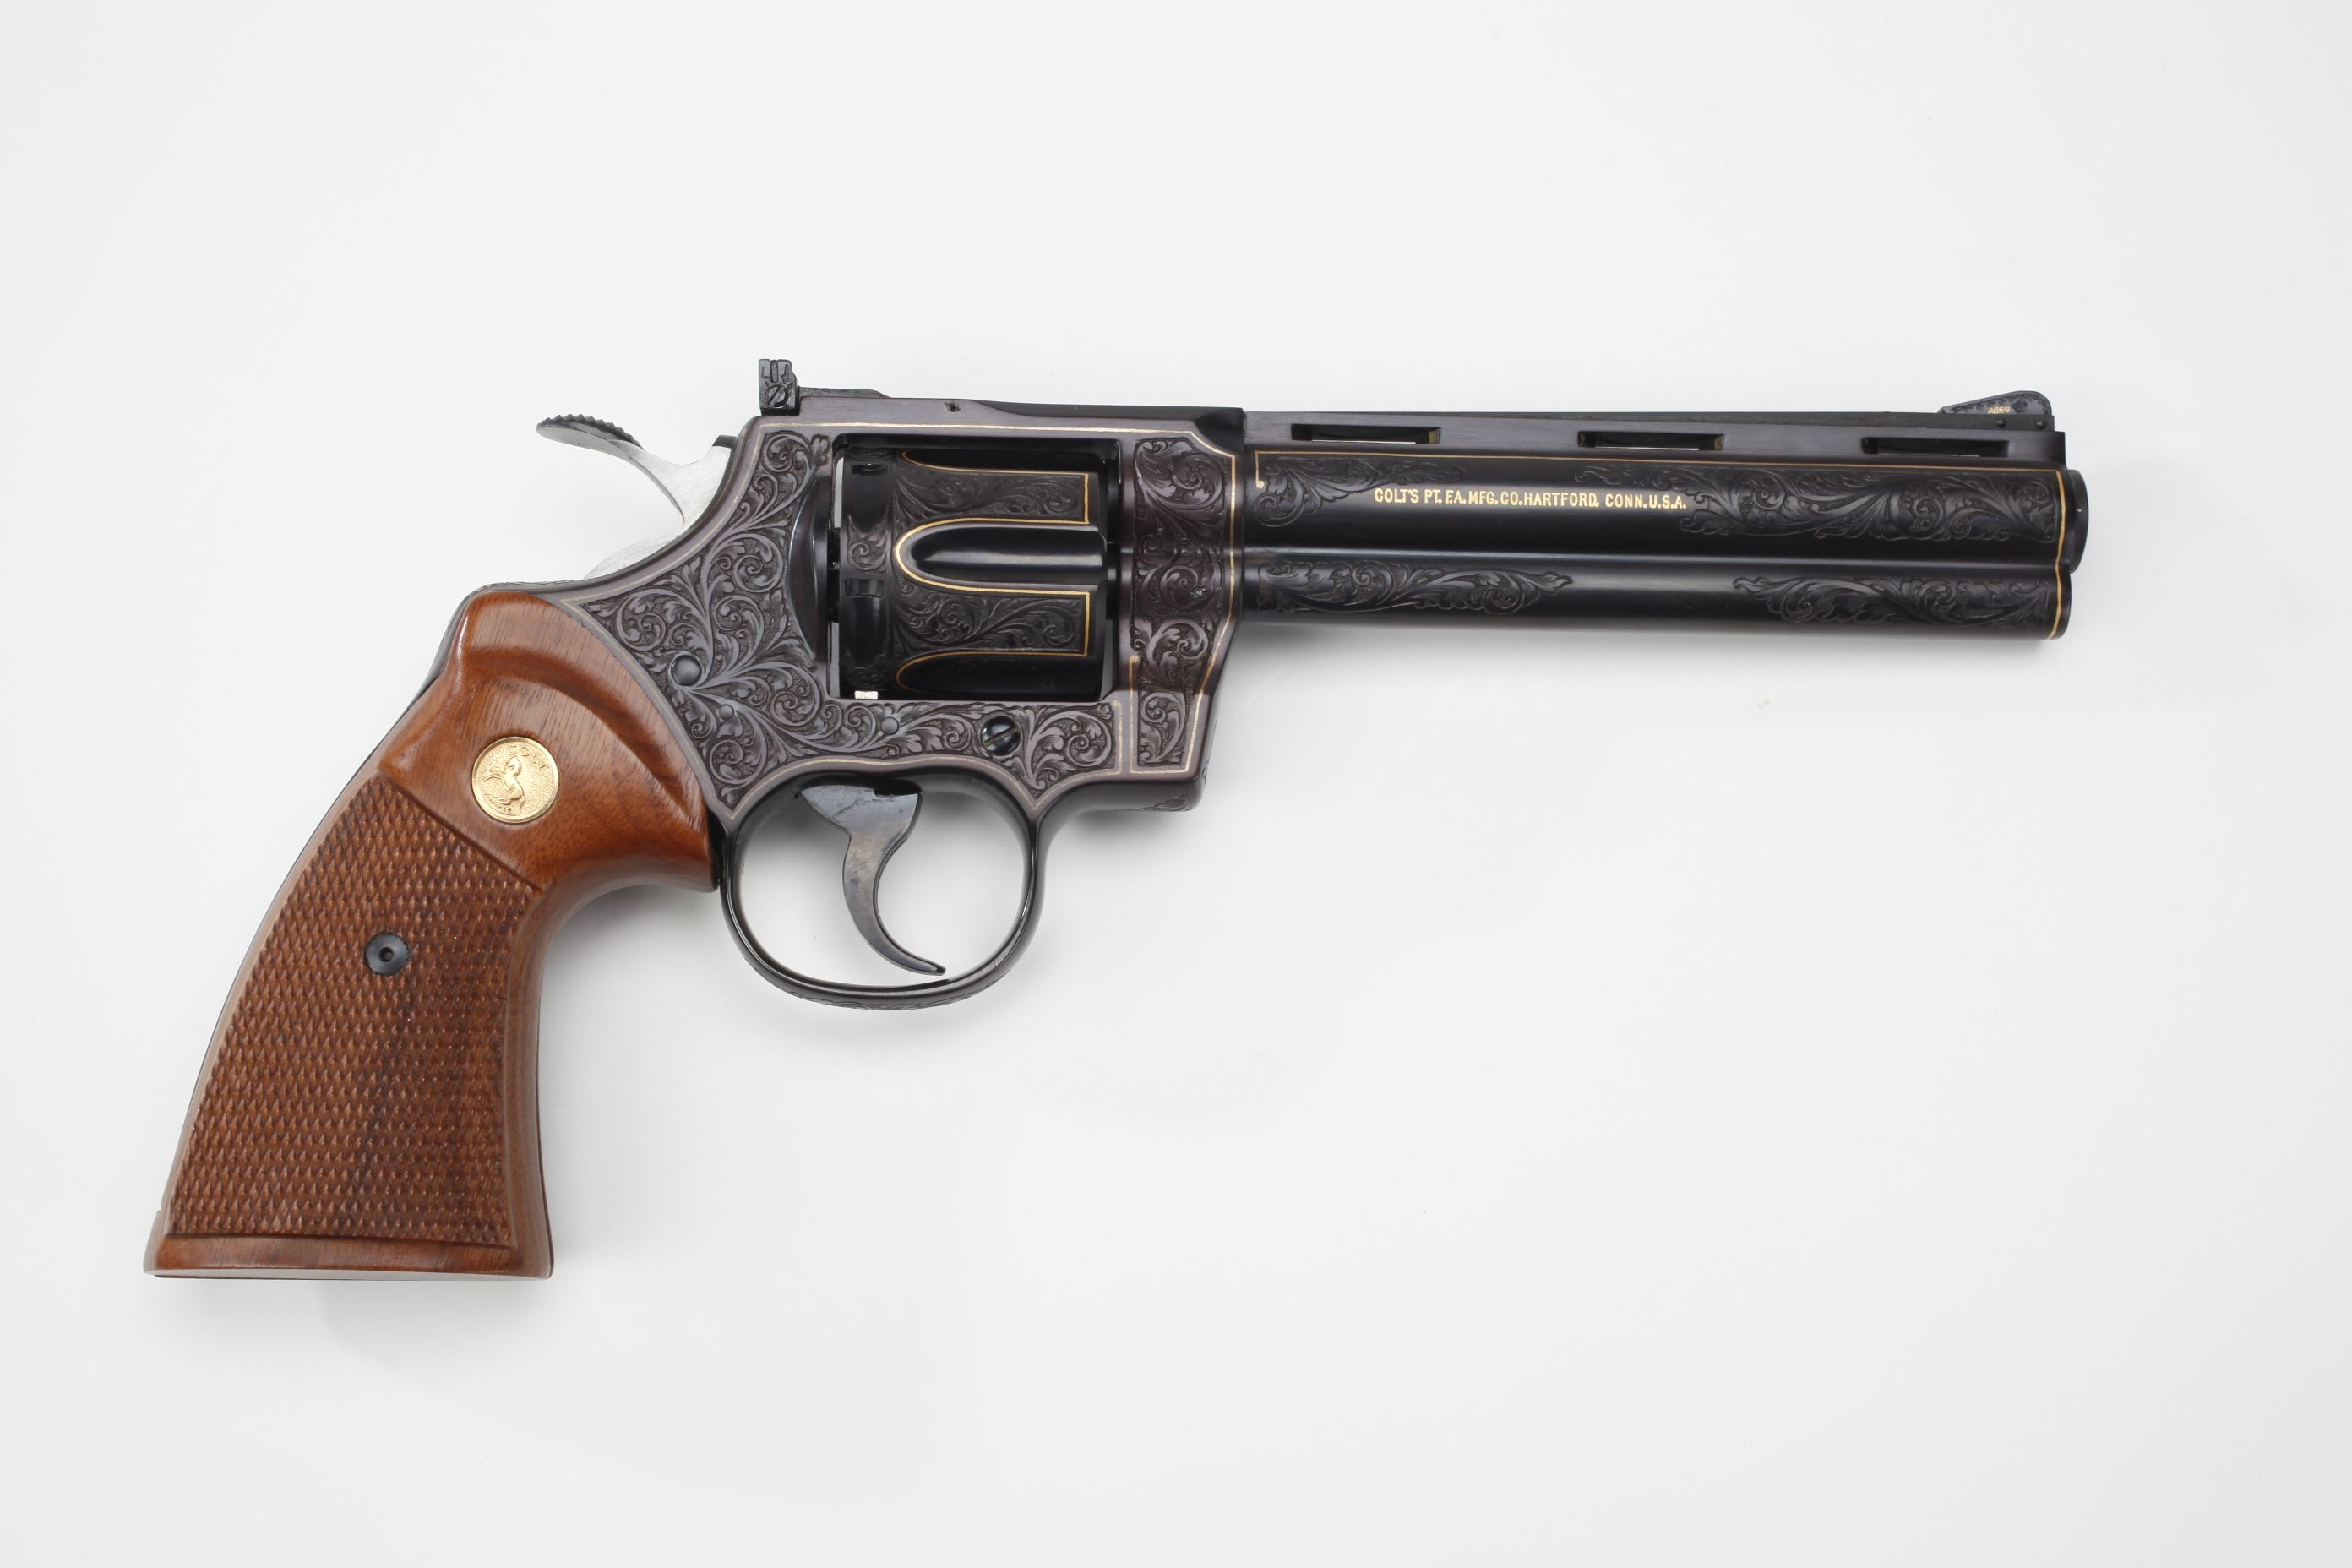 Colt Python Double-Action Revolver w/ checkered wood grip panels